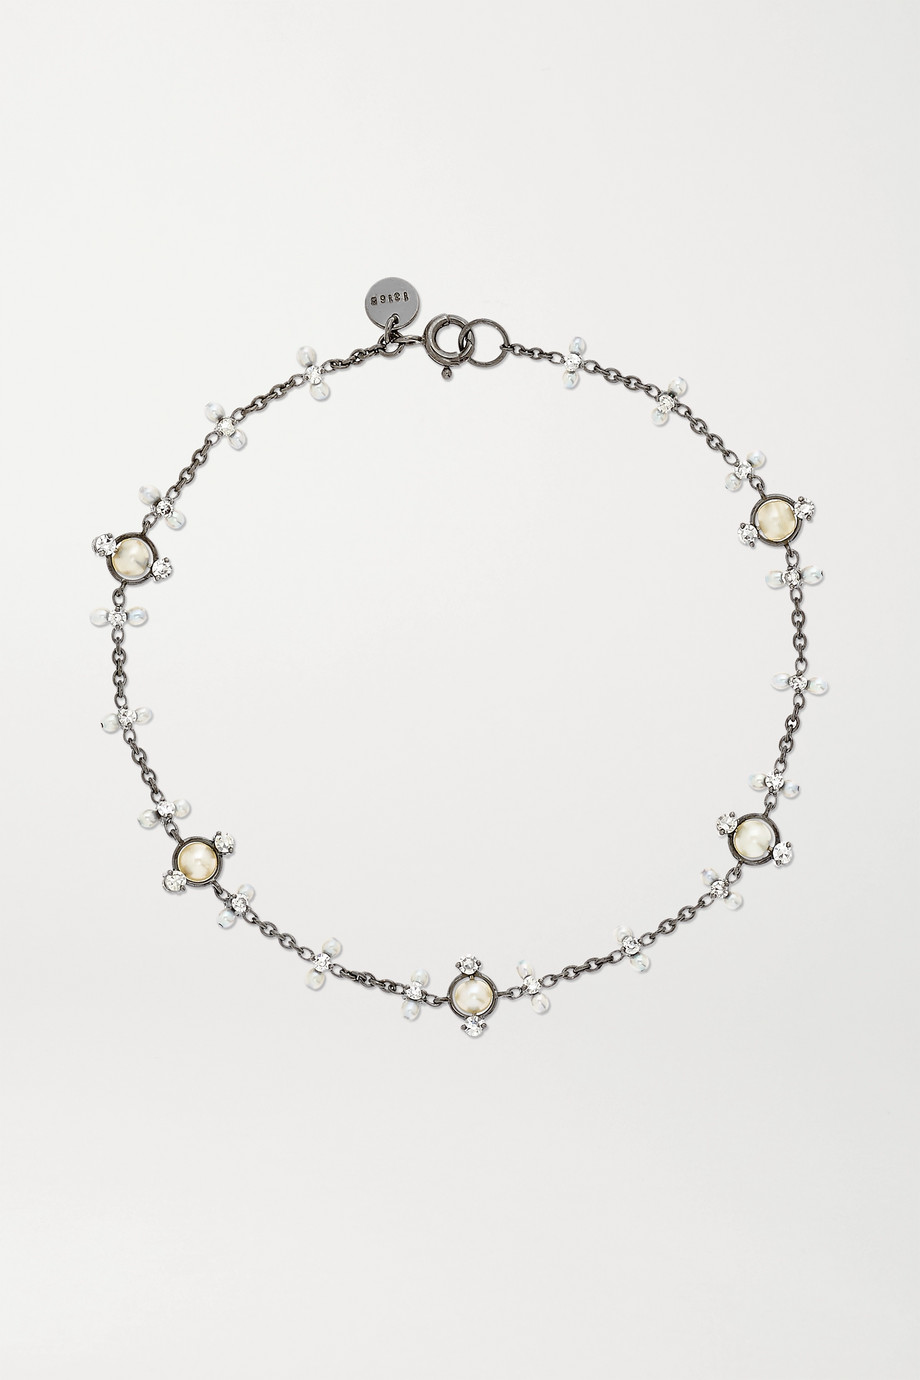 Nadia Morgenthaler + NET SUSTAIN 18-karat recycled blackened white gold, pearl and diamond bracelet